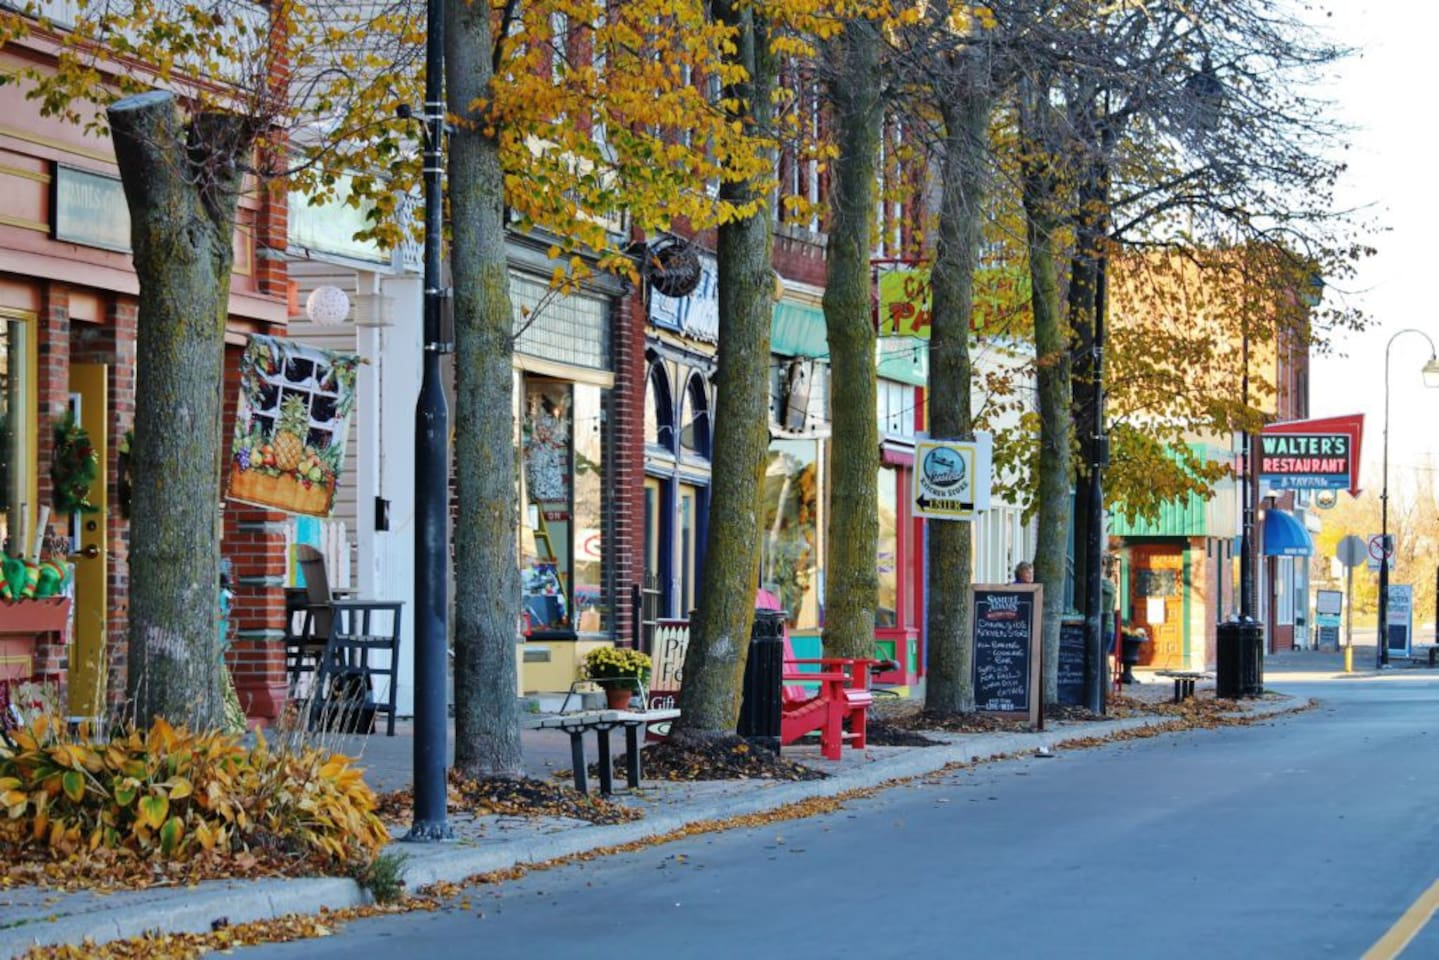 Downtown shops on West Street. Delicious food and amazing finds!